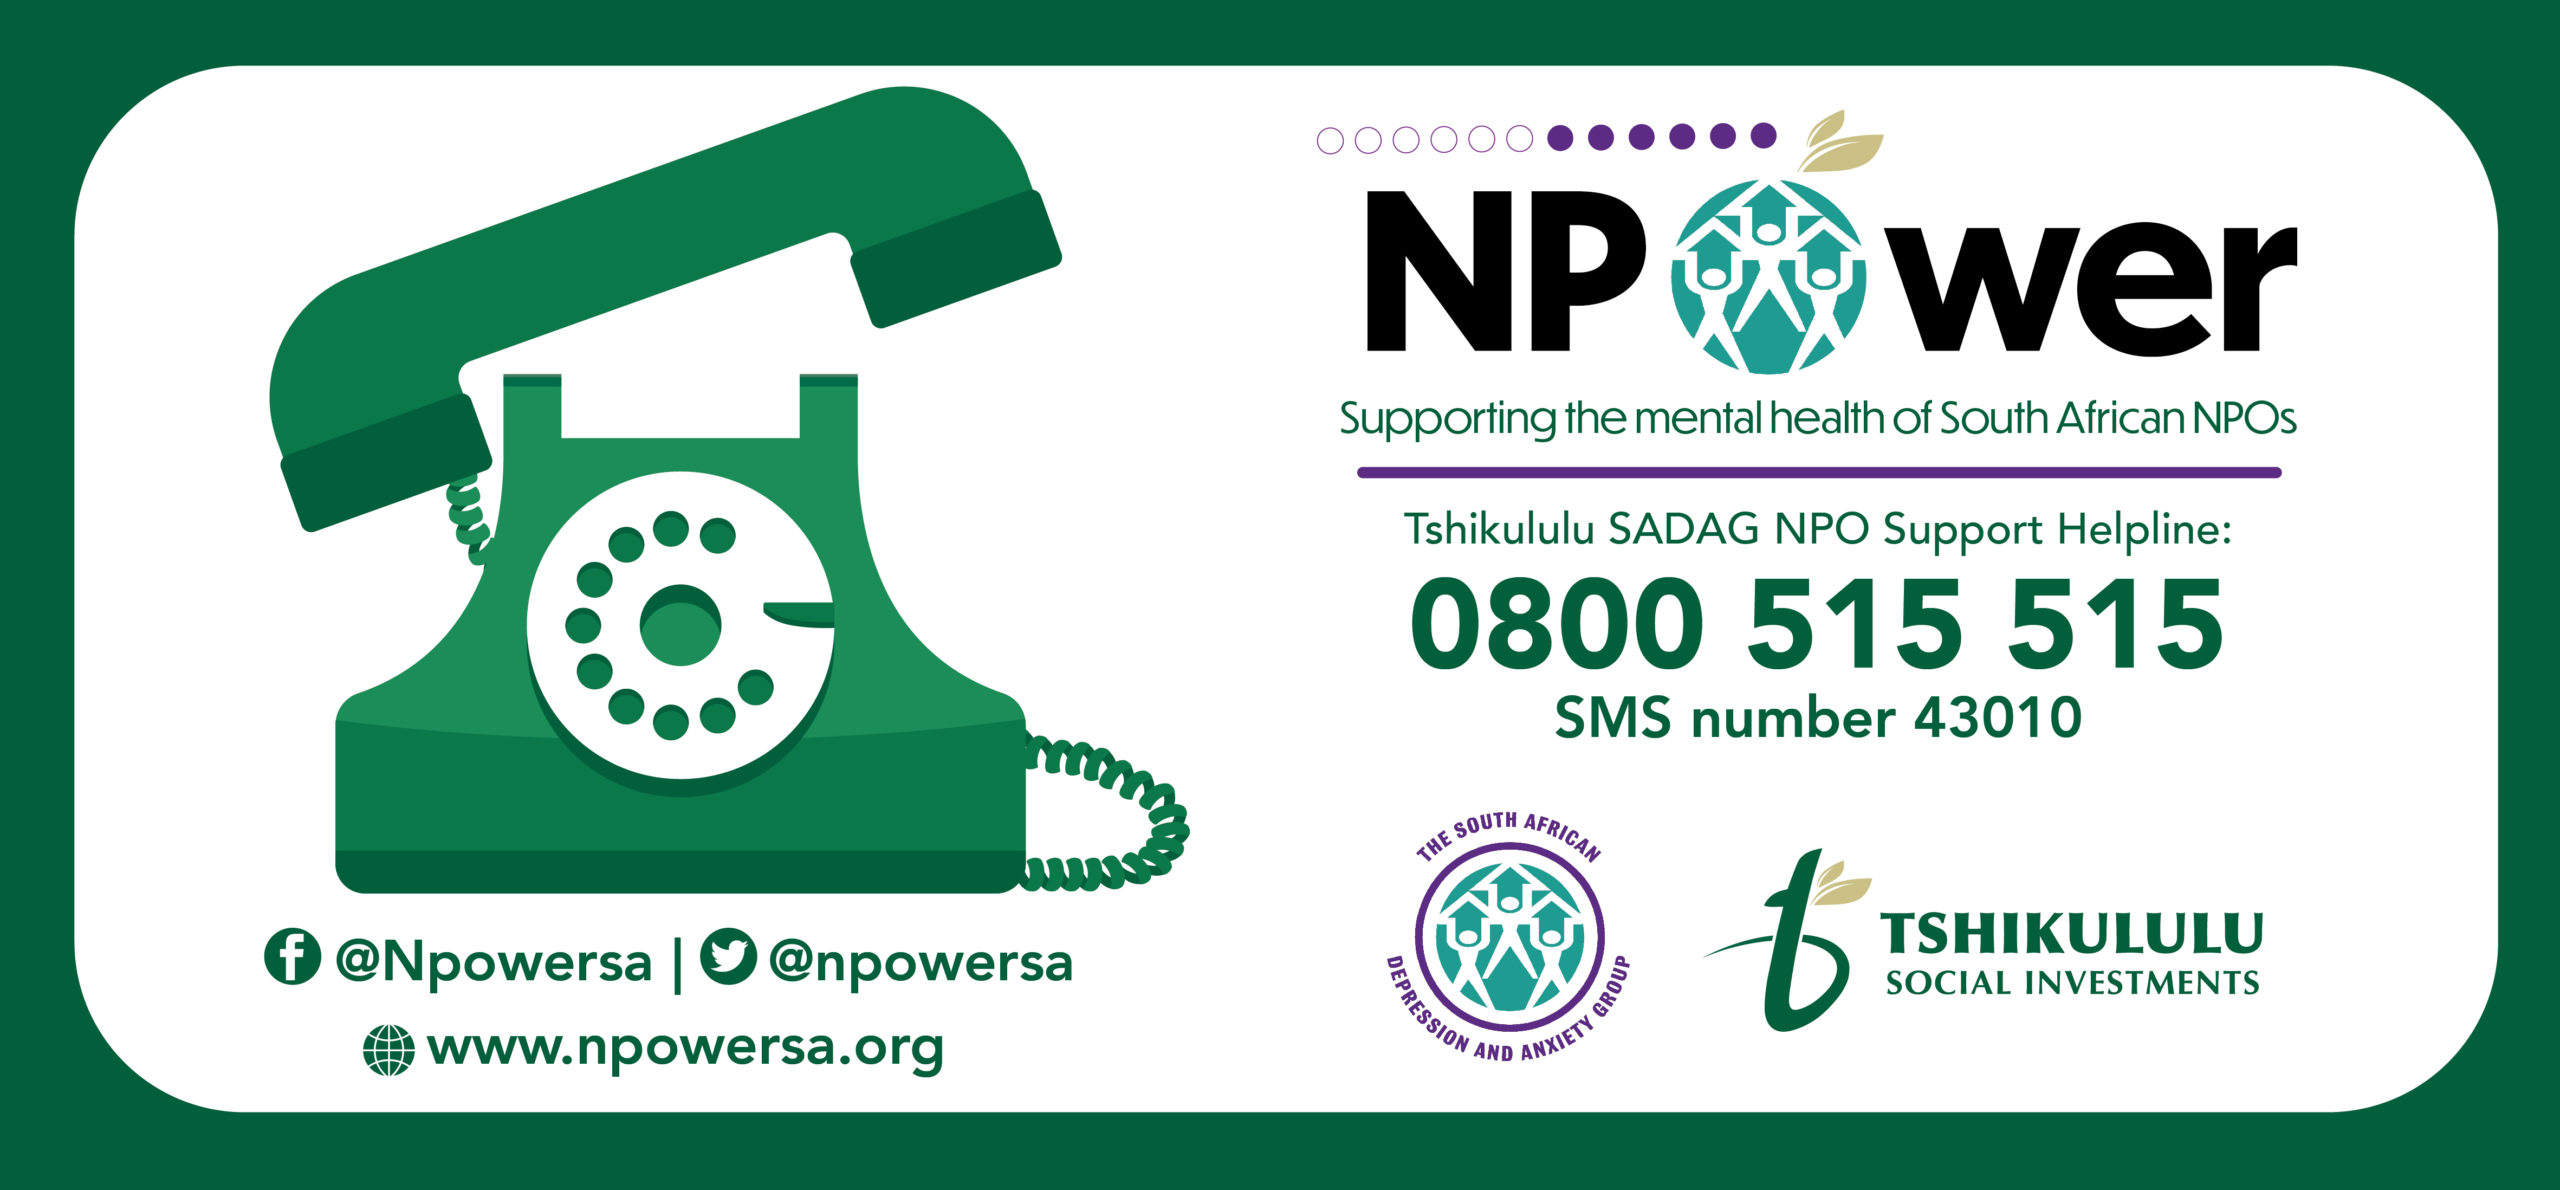 A first-of-its kind NPO Mental Health Support Programme and 24-hour toll-free Helpline to offer mental health care and support to all NPO's has been launched in South Africa.